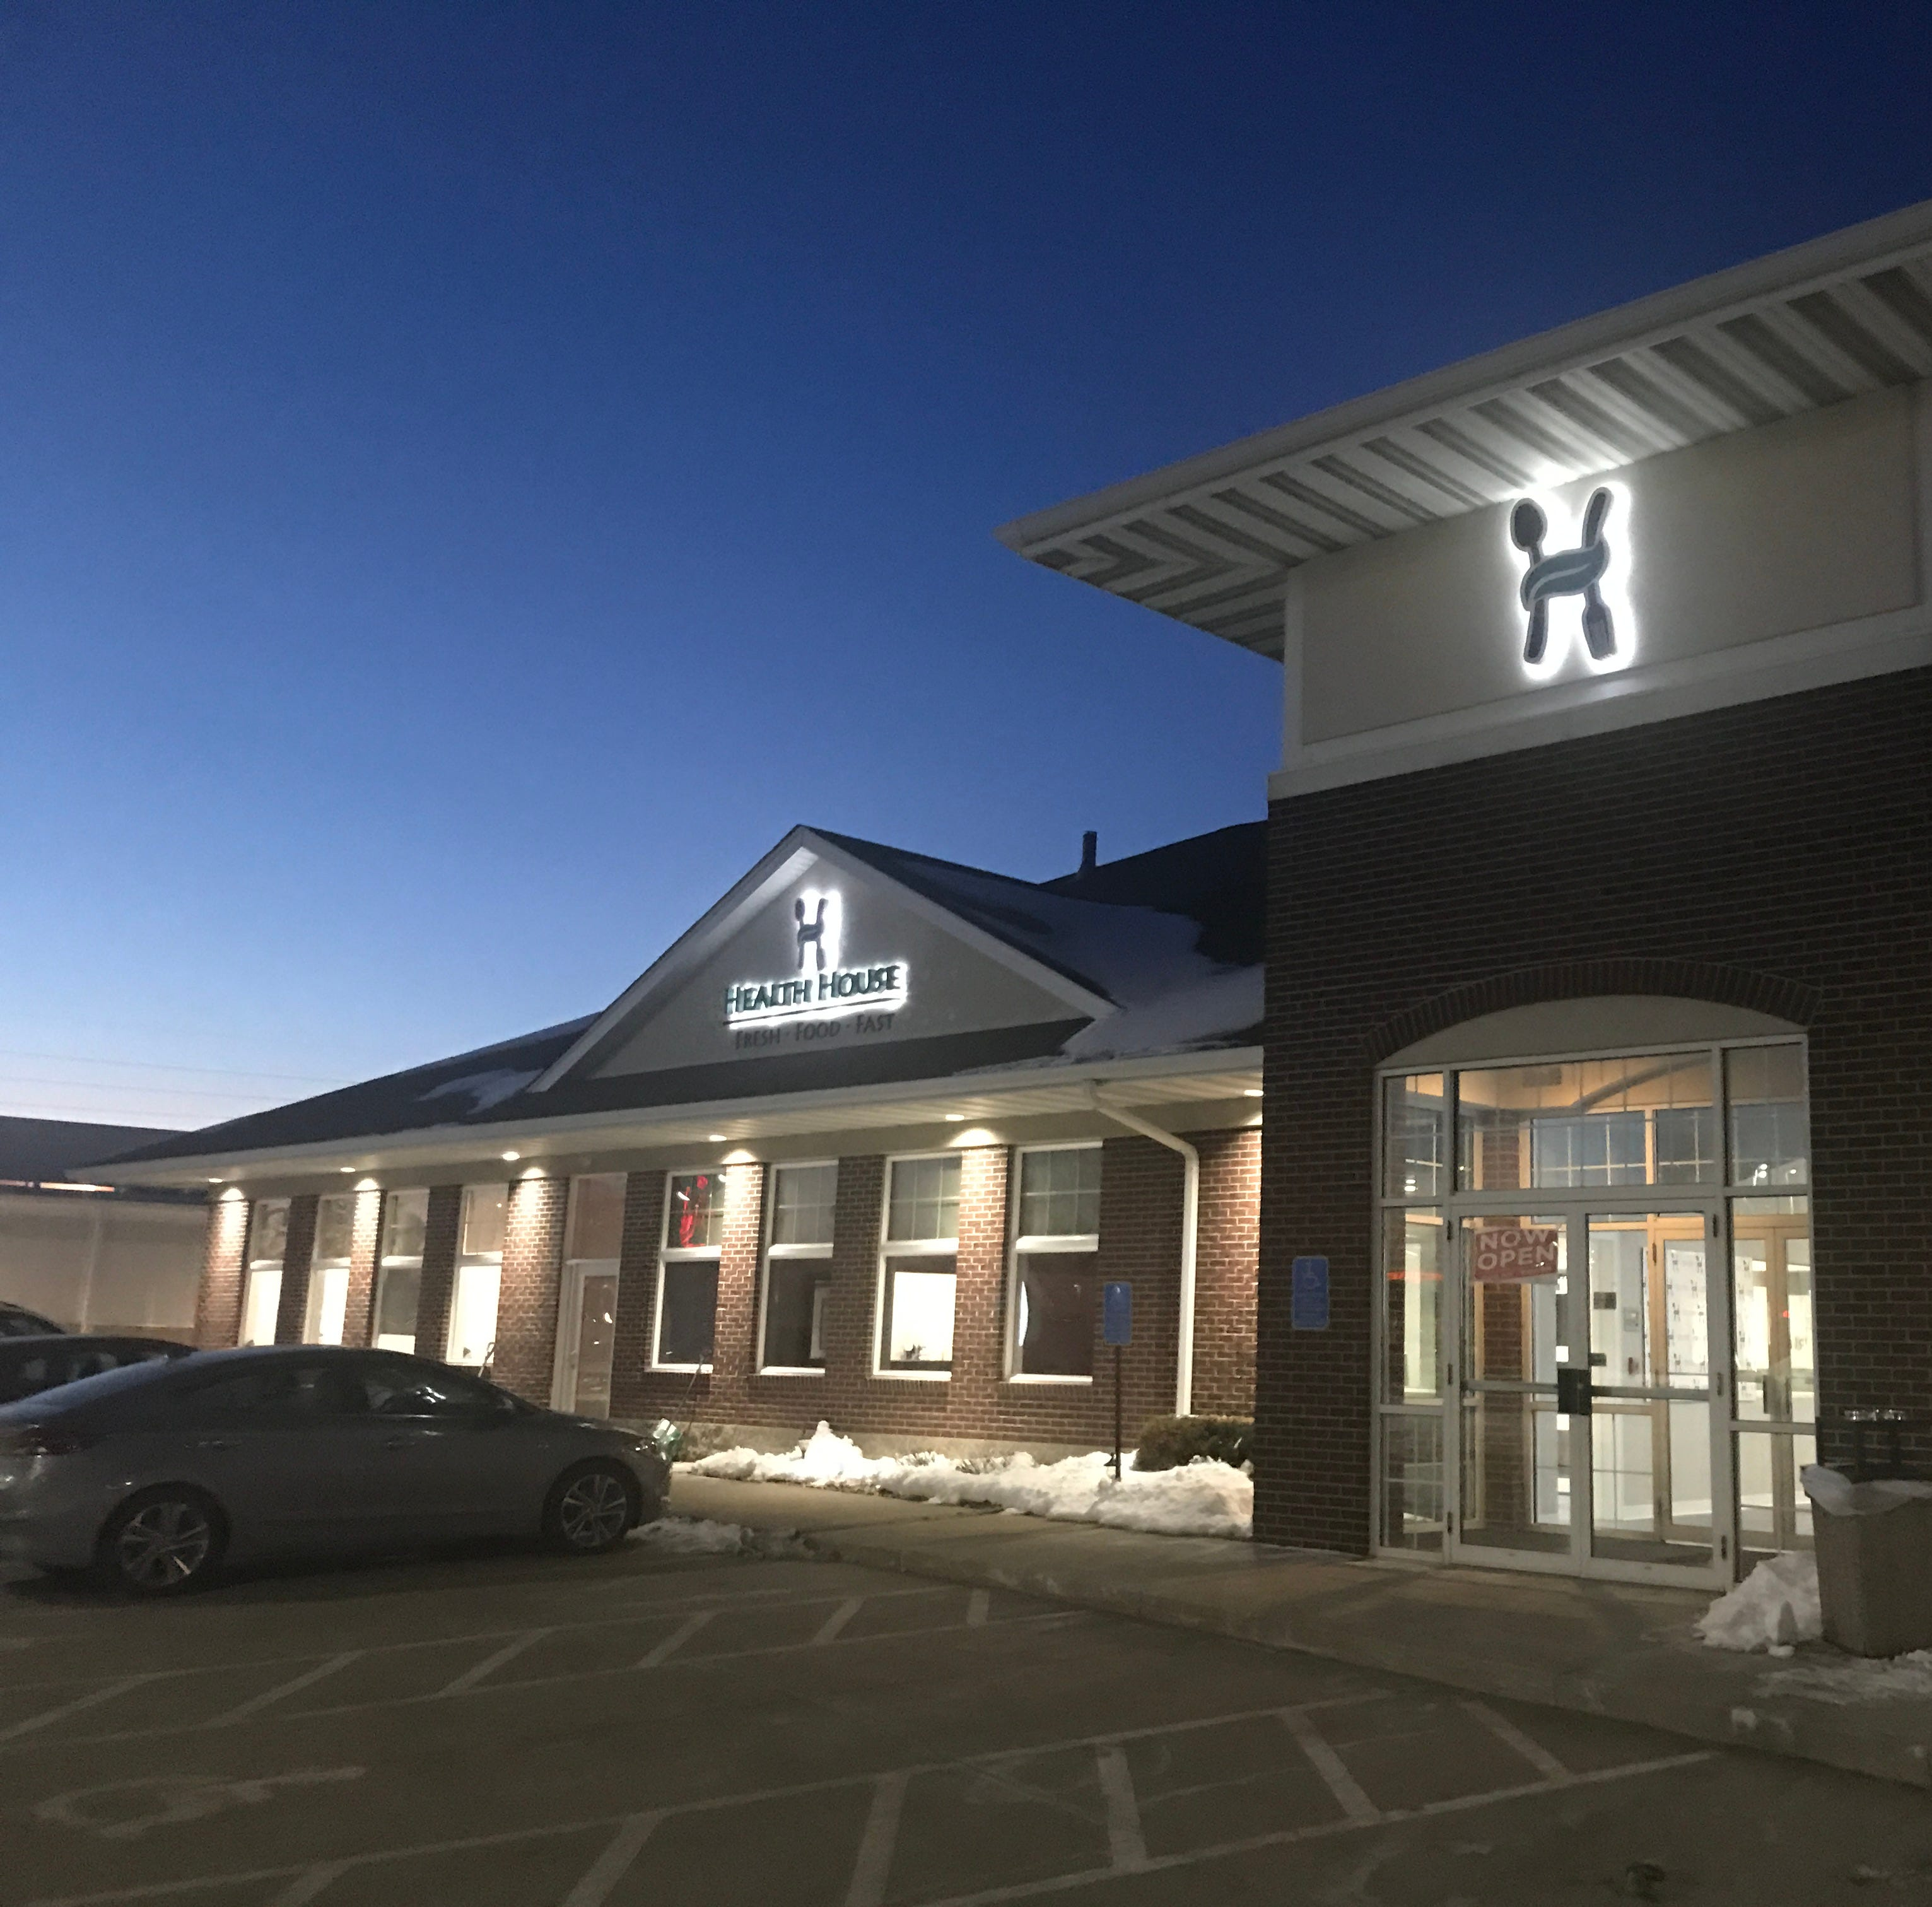 Treat your body like prime real estate at this new healthy restaurant in Johnston